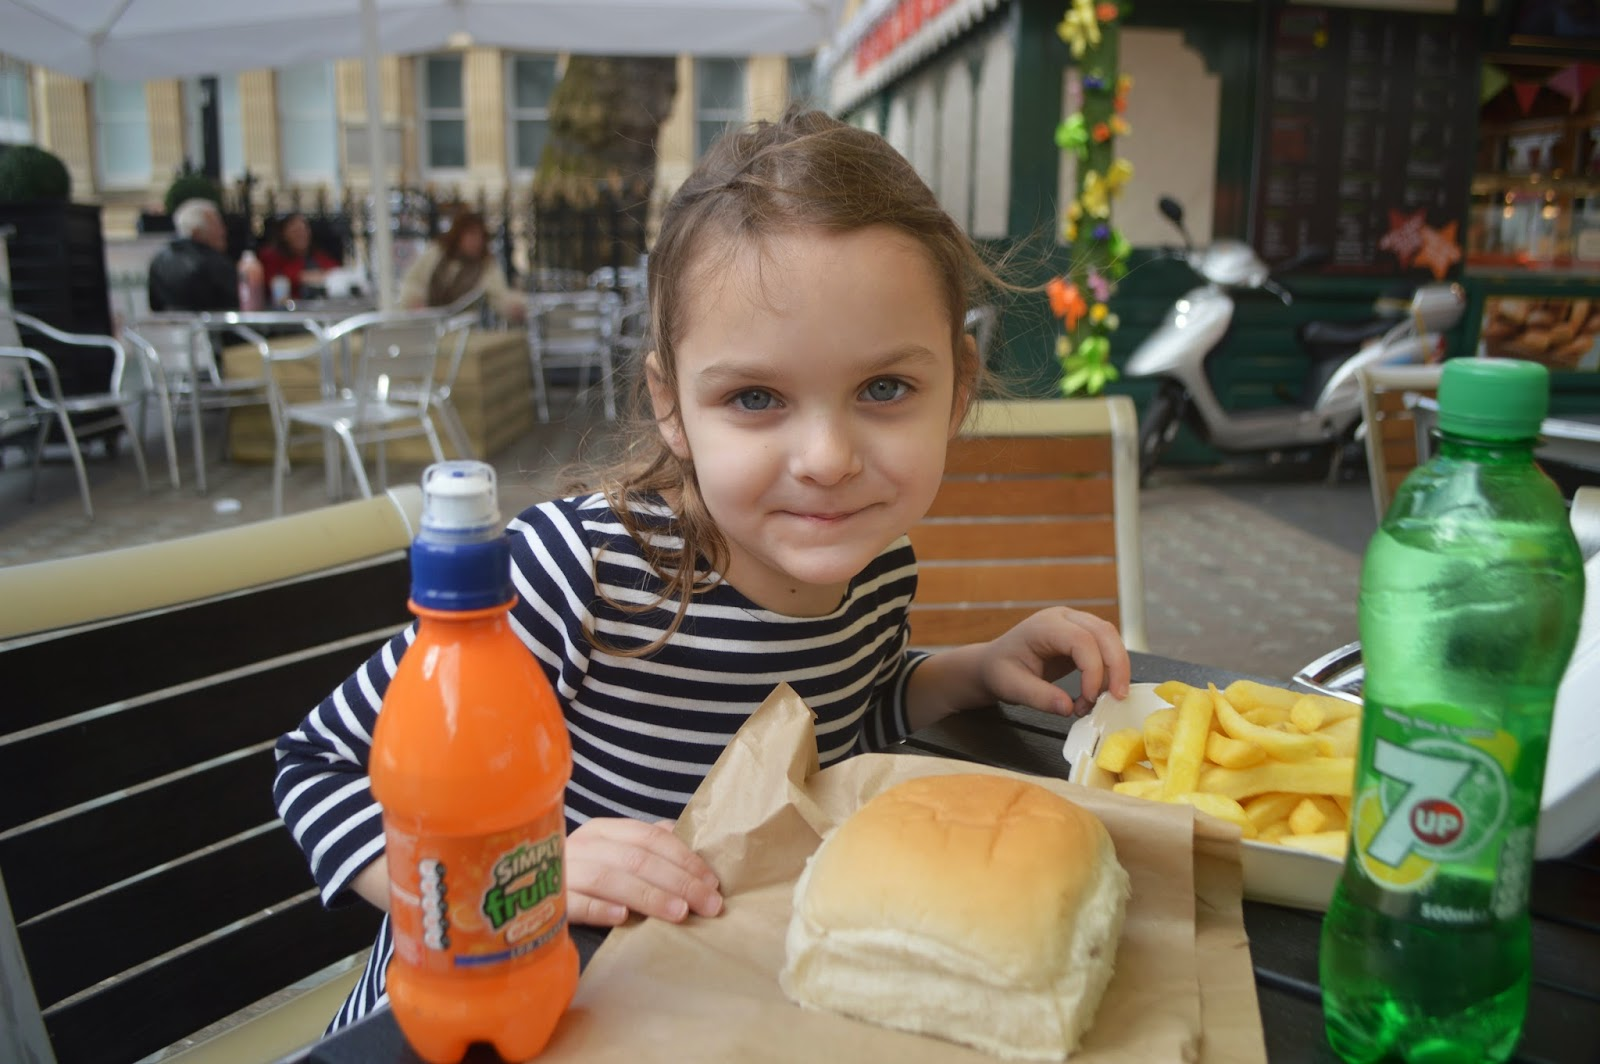 Cardiff Half Term Yo Sushi St Davids Centre Wales Hot dog and chips Bwyta Hayes Island Snack Bar